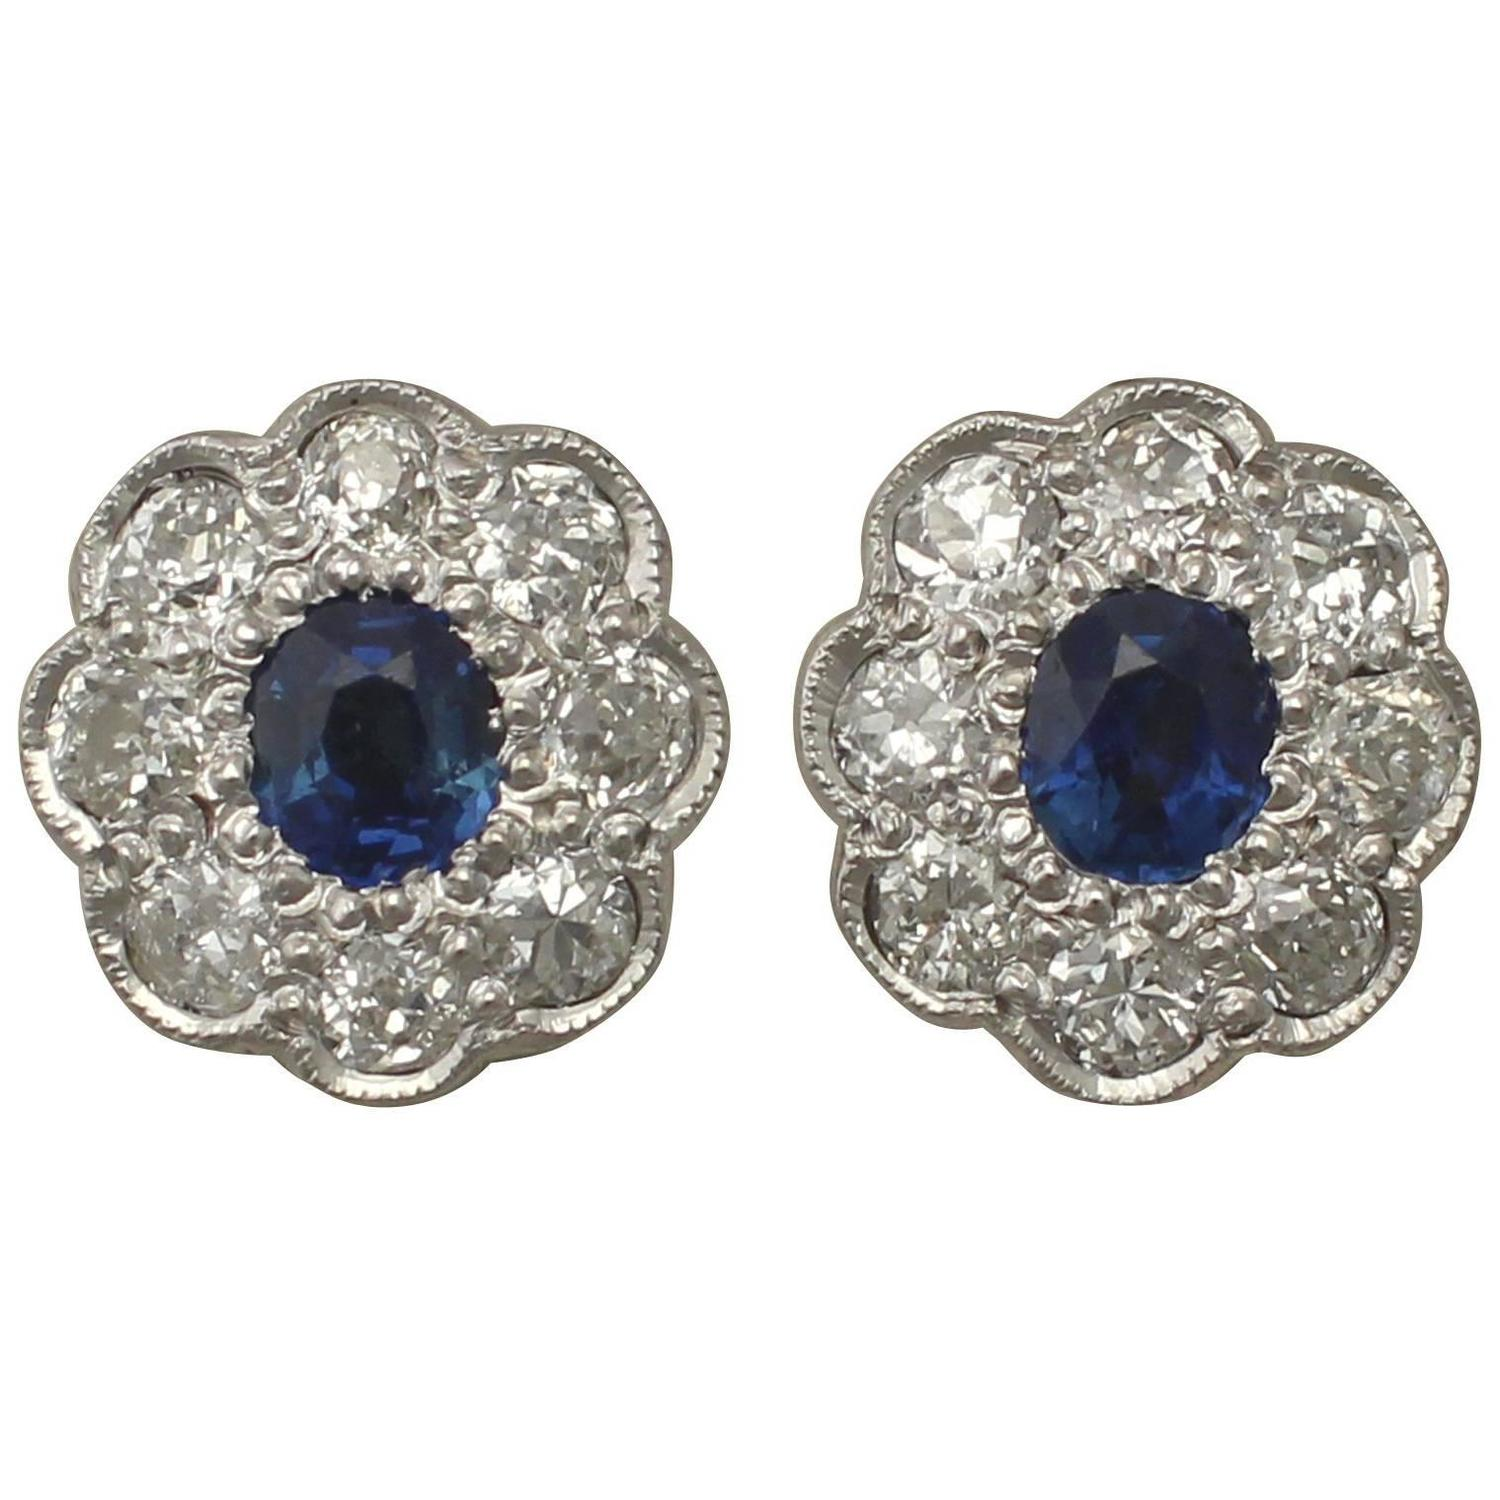 Antique 1920s 0 92Ct Sapphire and 1 02Ct Diamond 18k White Gold